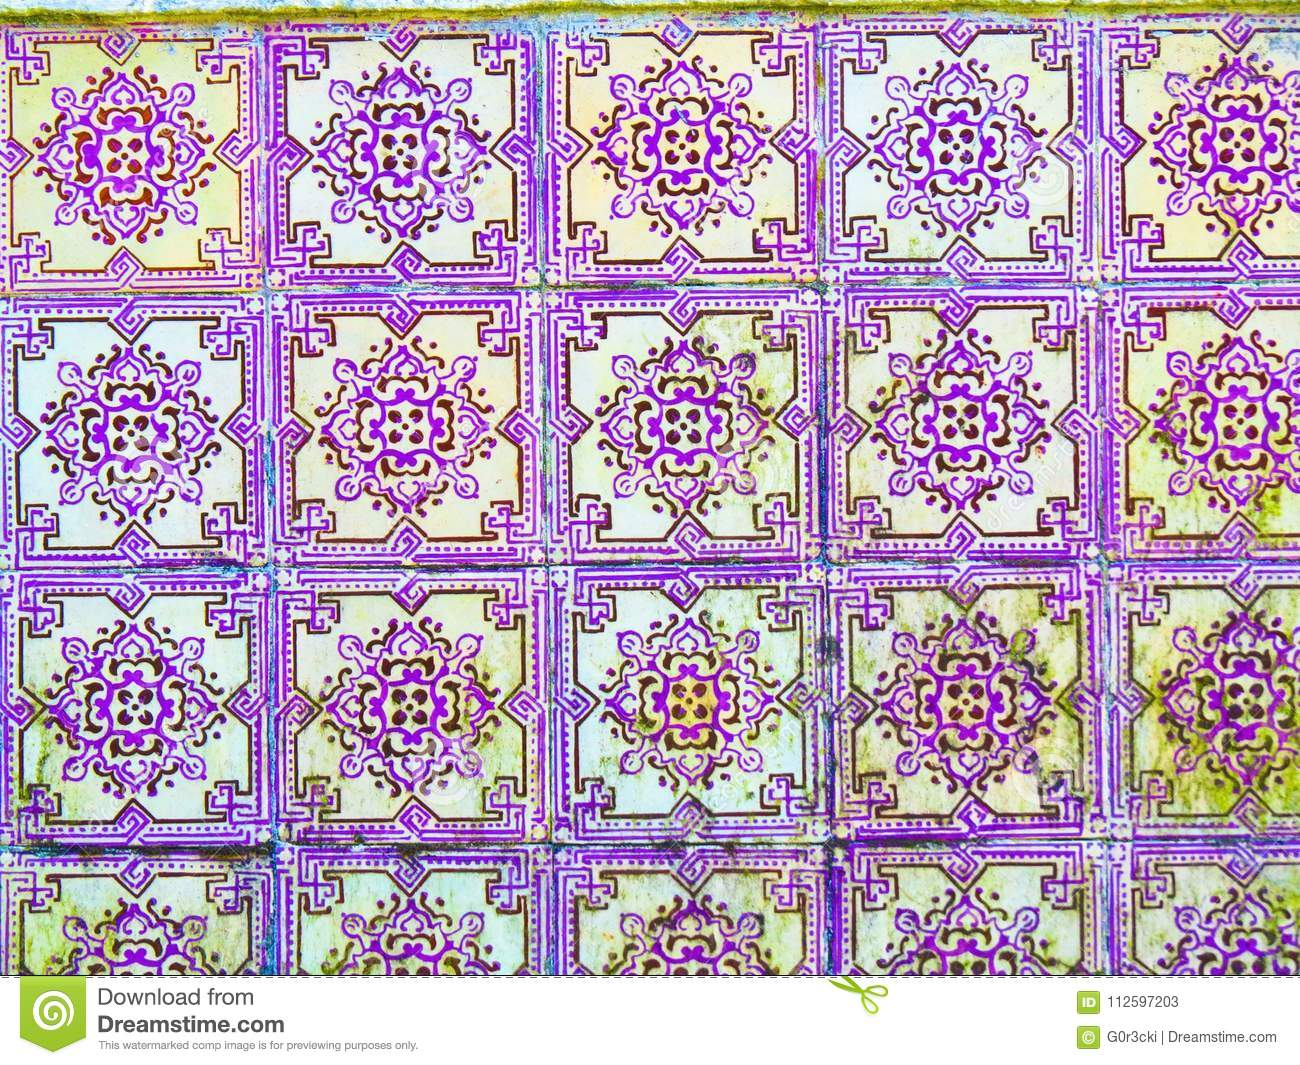 Portuguese Purple Glazed Tiles, Textures, Dirty, Forsaken, Portugal Handmade Crafts and Arts